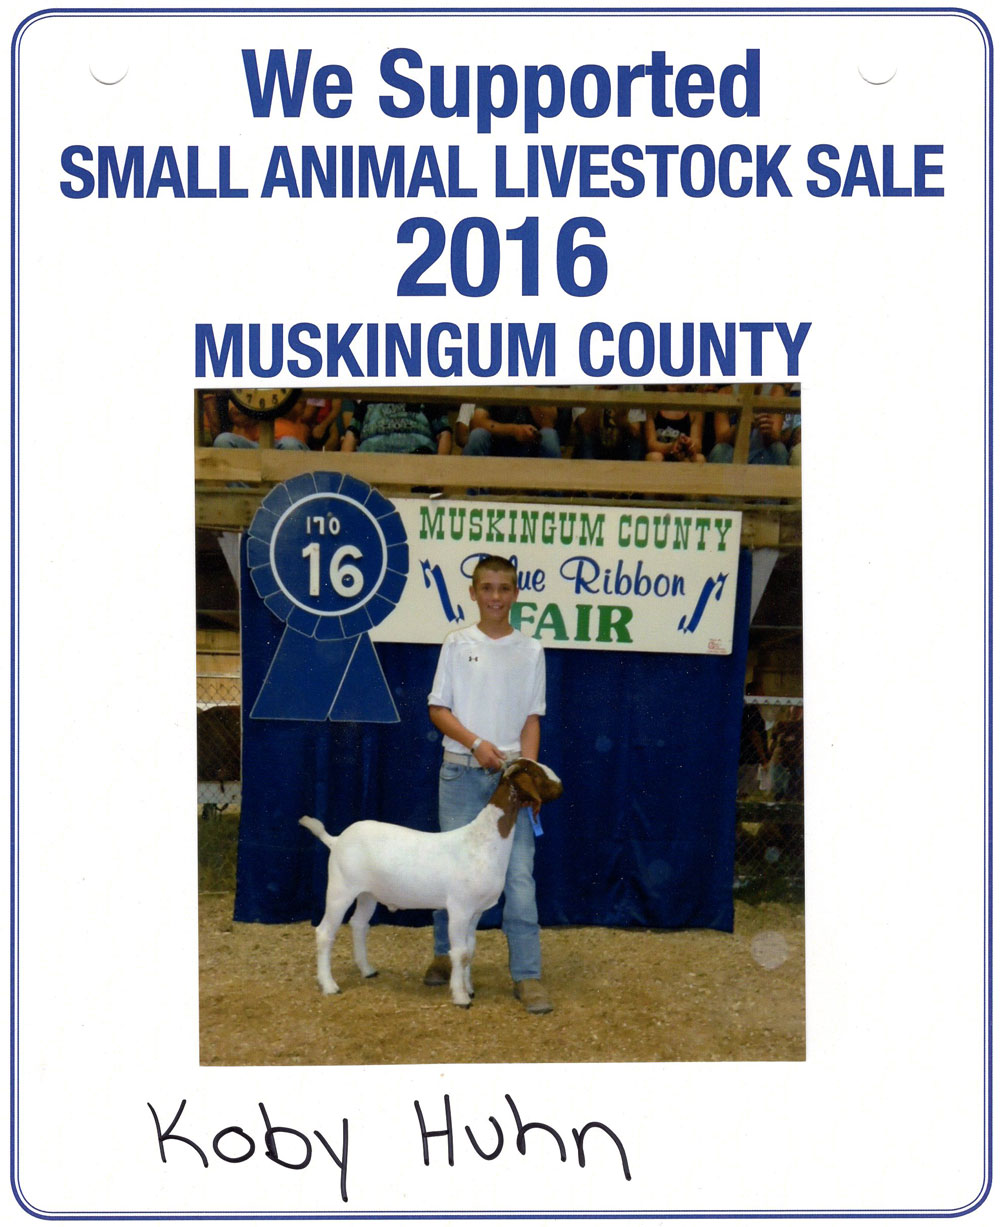 Zemba Bros Community Support Muskingum County Fair Live Stock Auction 6